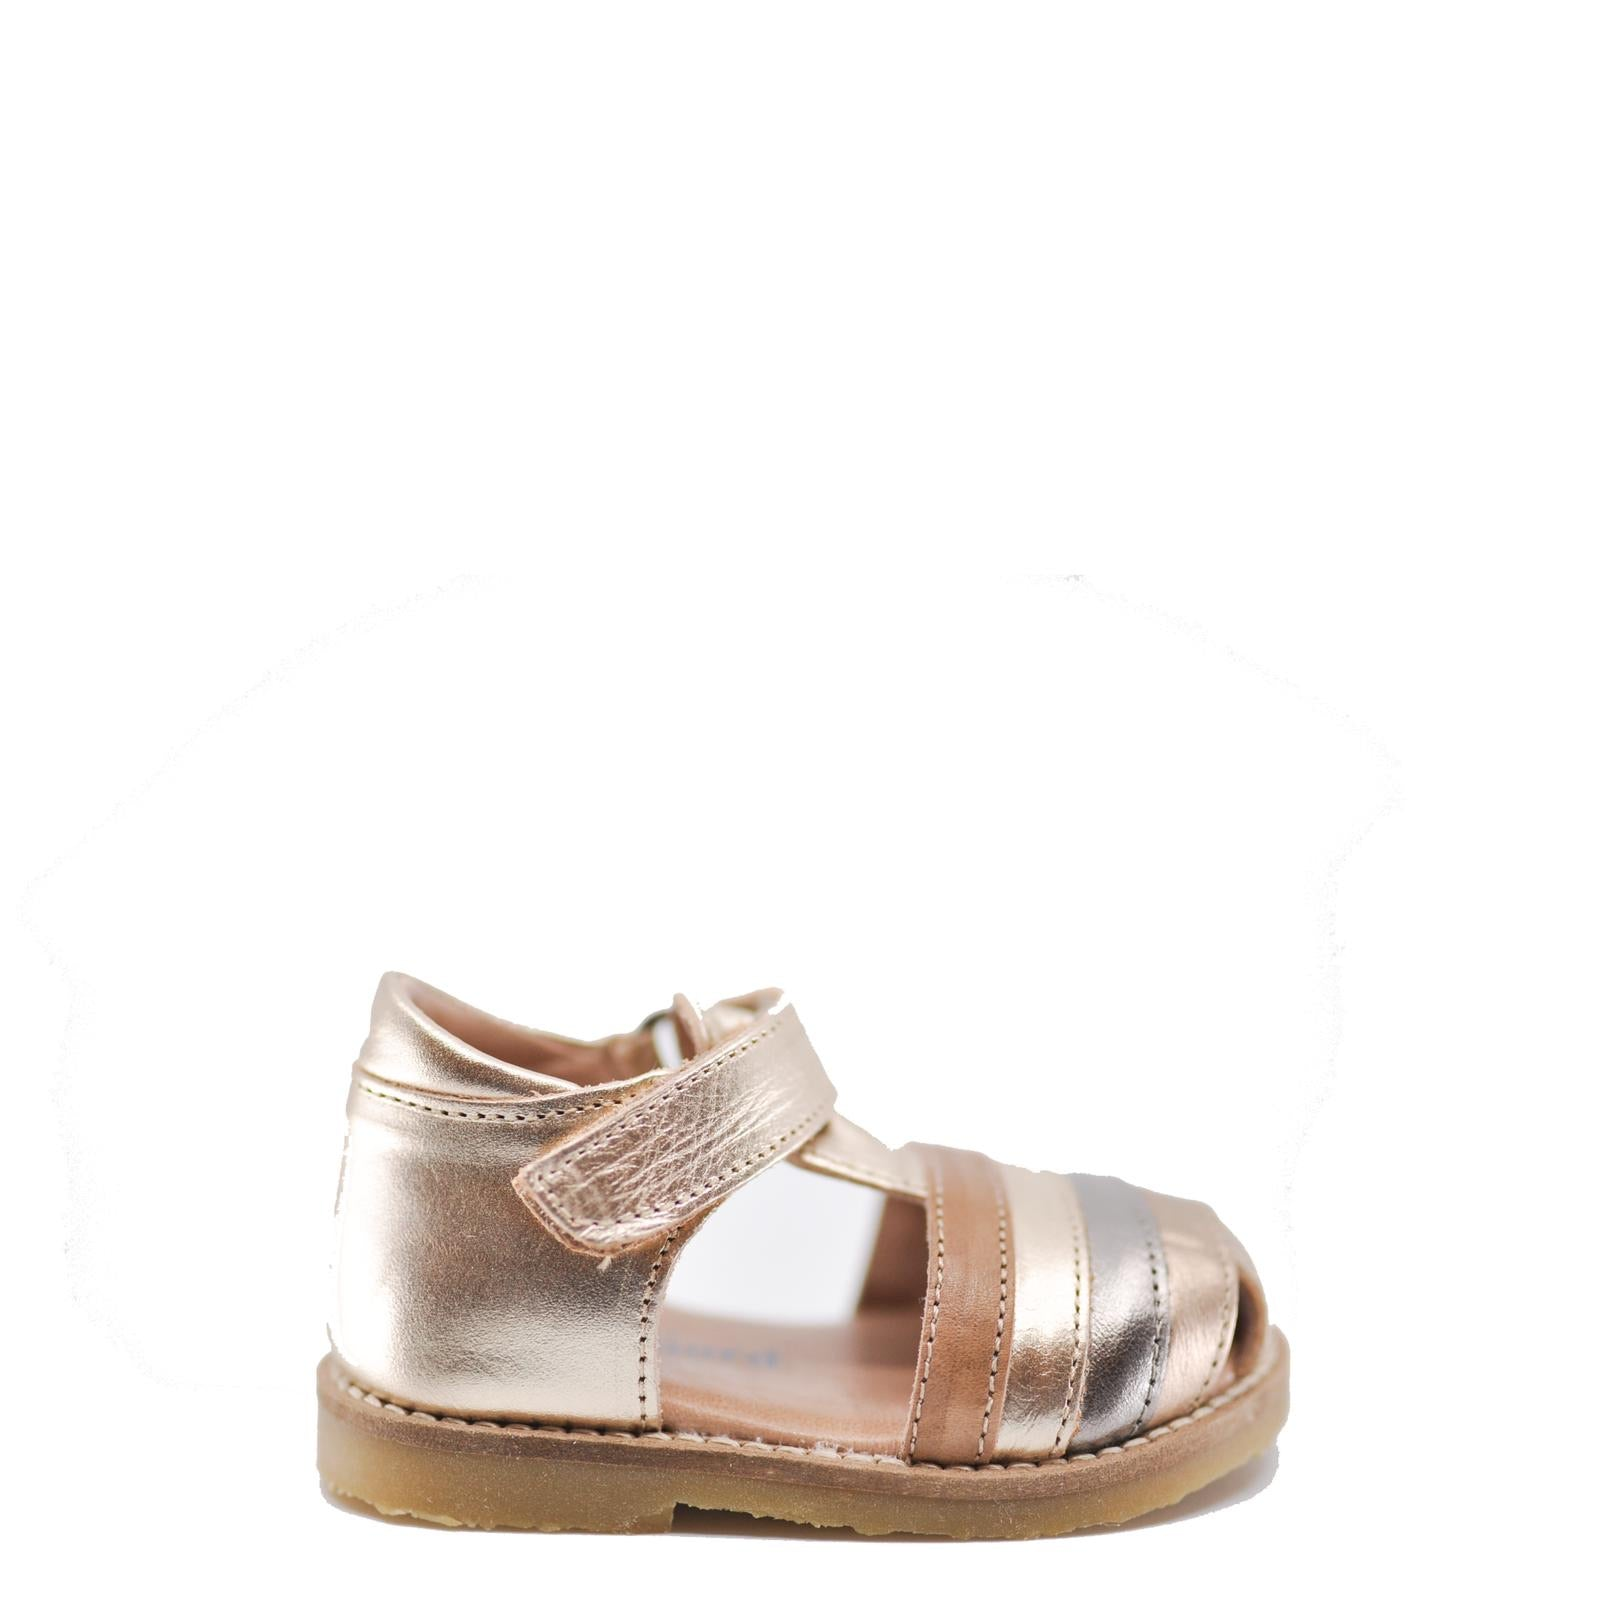 Petit Nord Gold Baby Sandal-Tassel Children Shoes